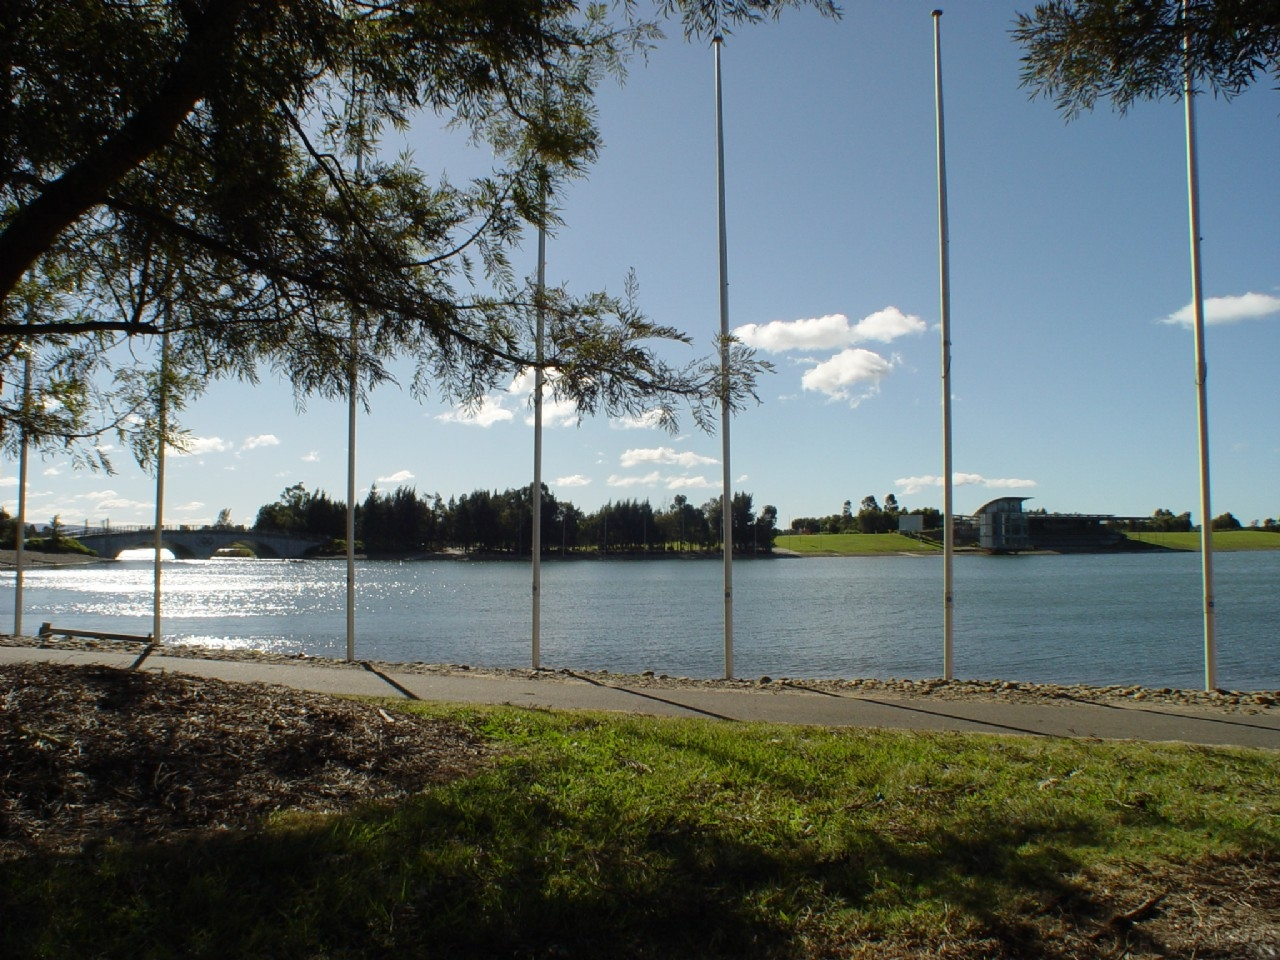 International Regatta Centre